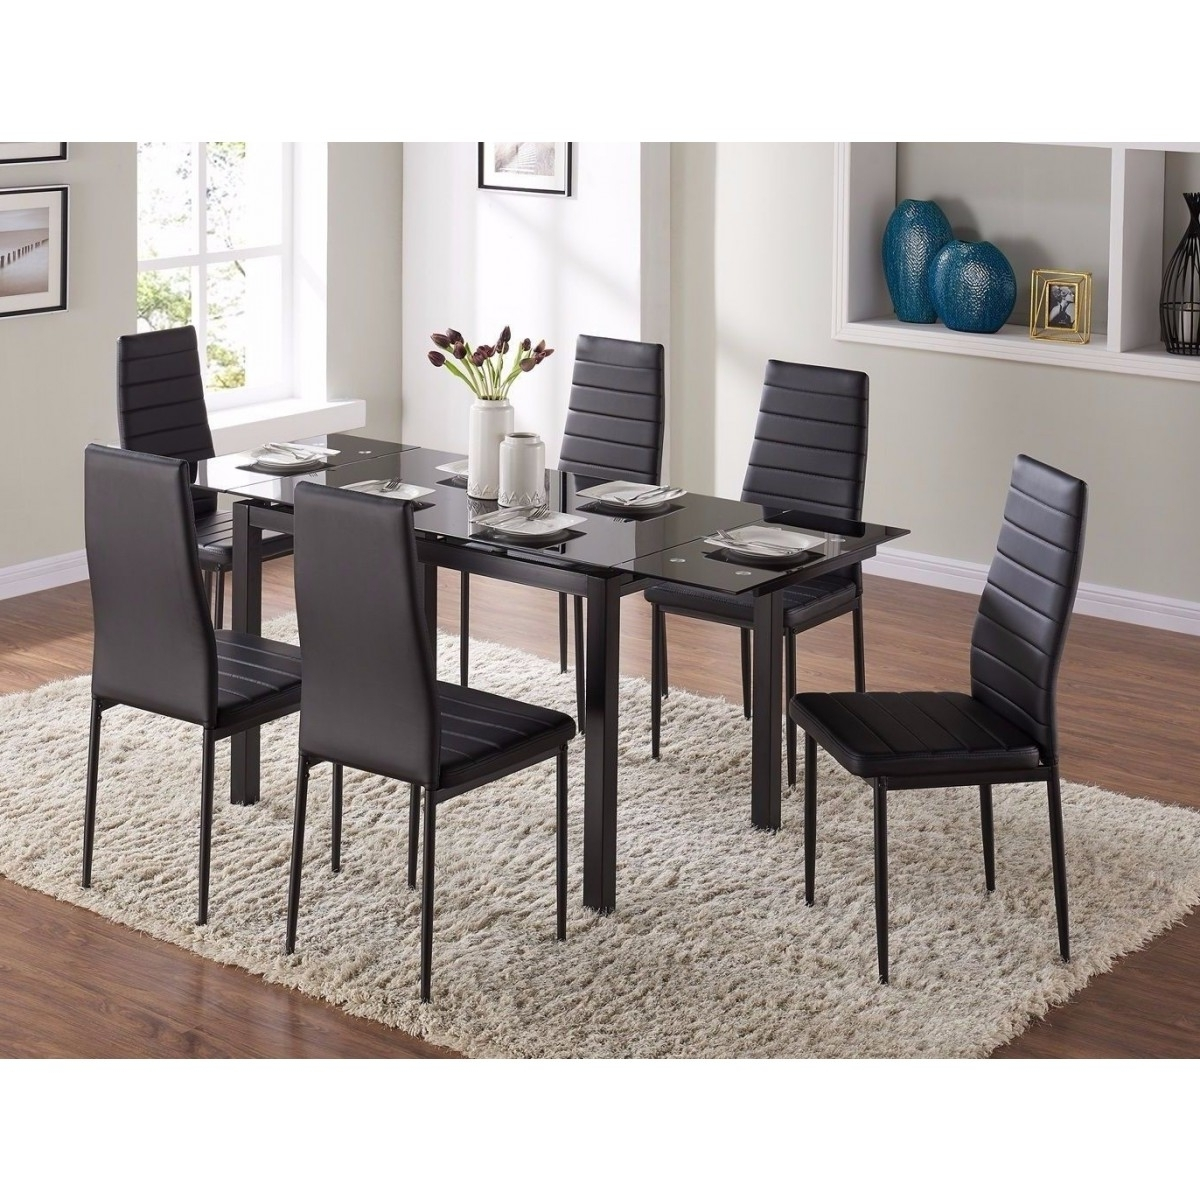 7Pc Extending Glass Dining Table & Black Faux Leather Chairs Set Intended For Preferred Glass Dining Tables And Leather Chairs (Gallery 12 of 25)